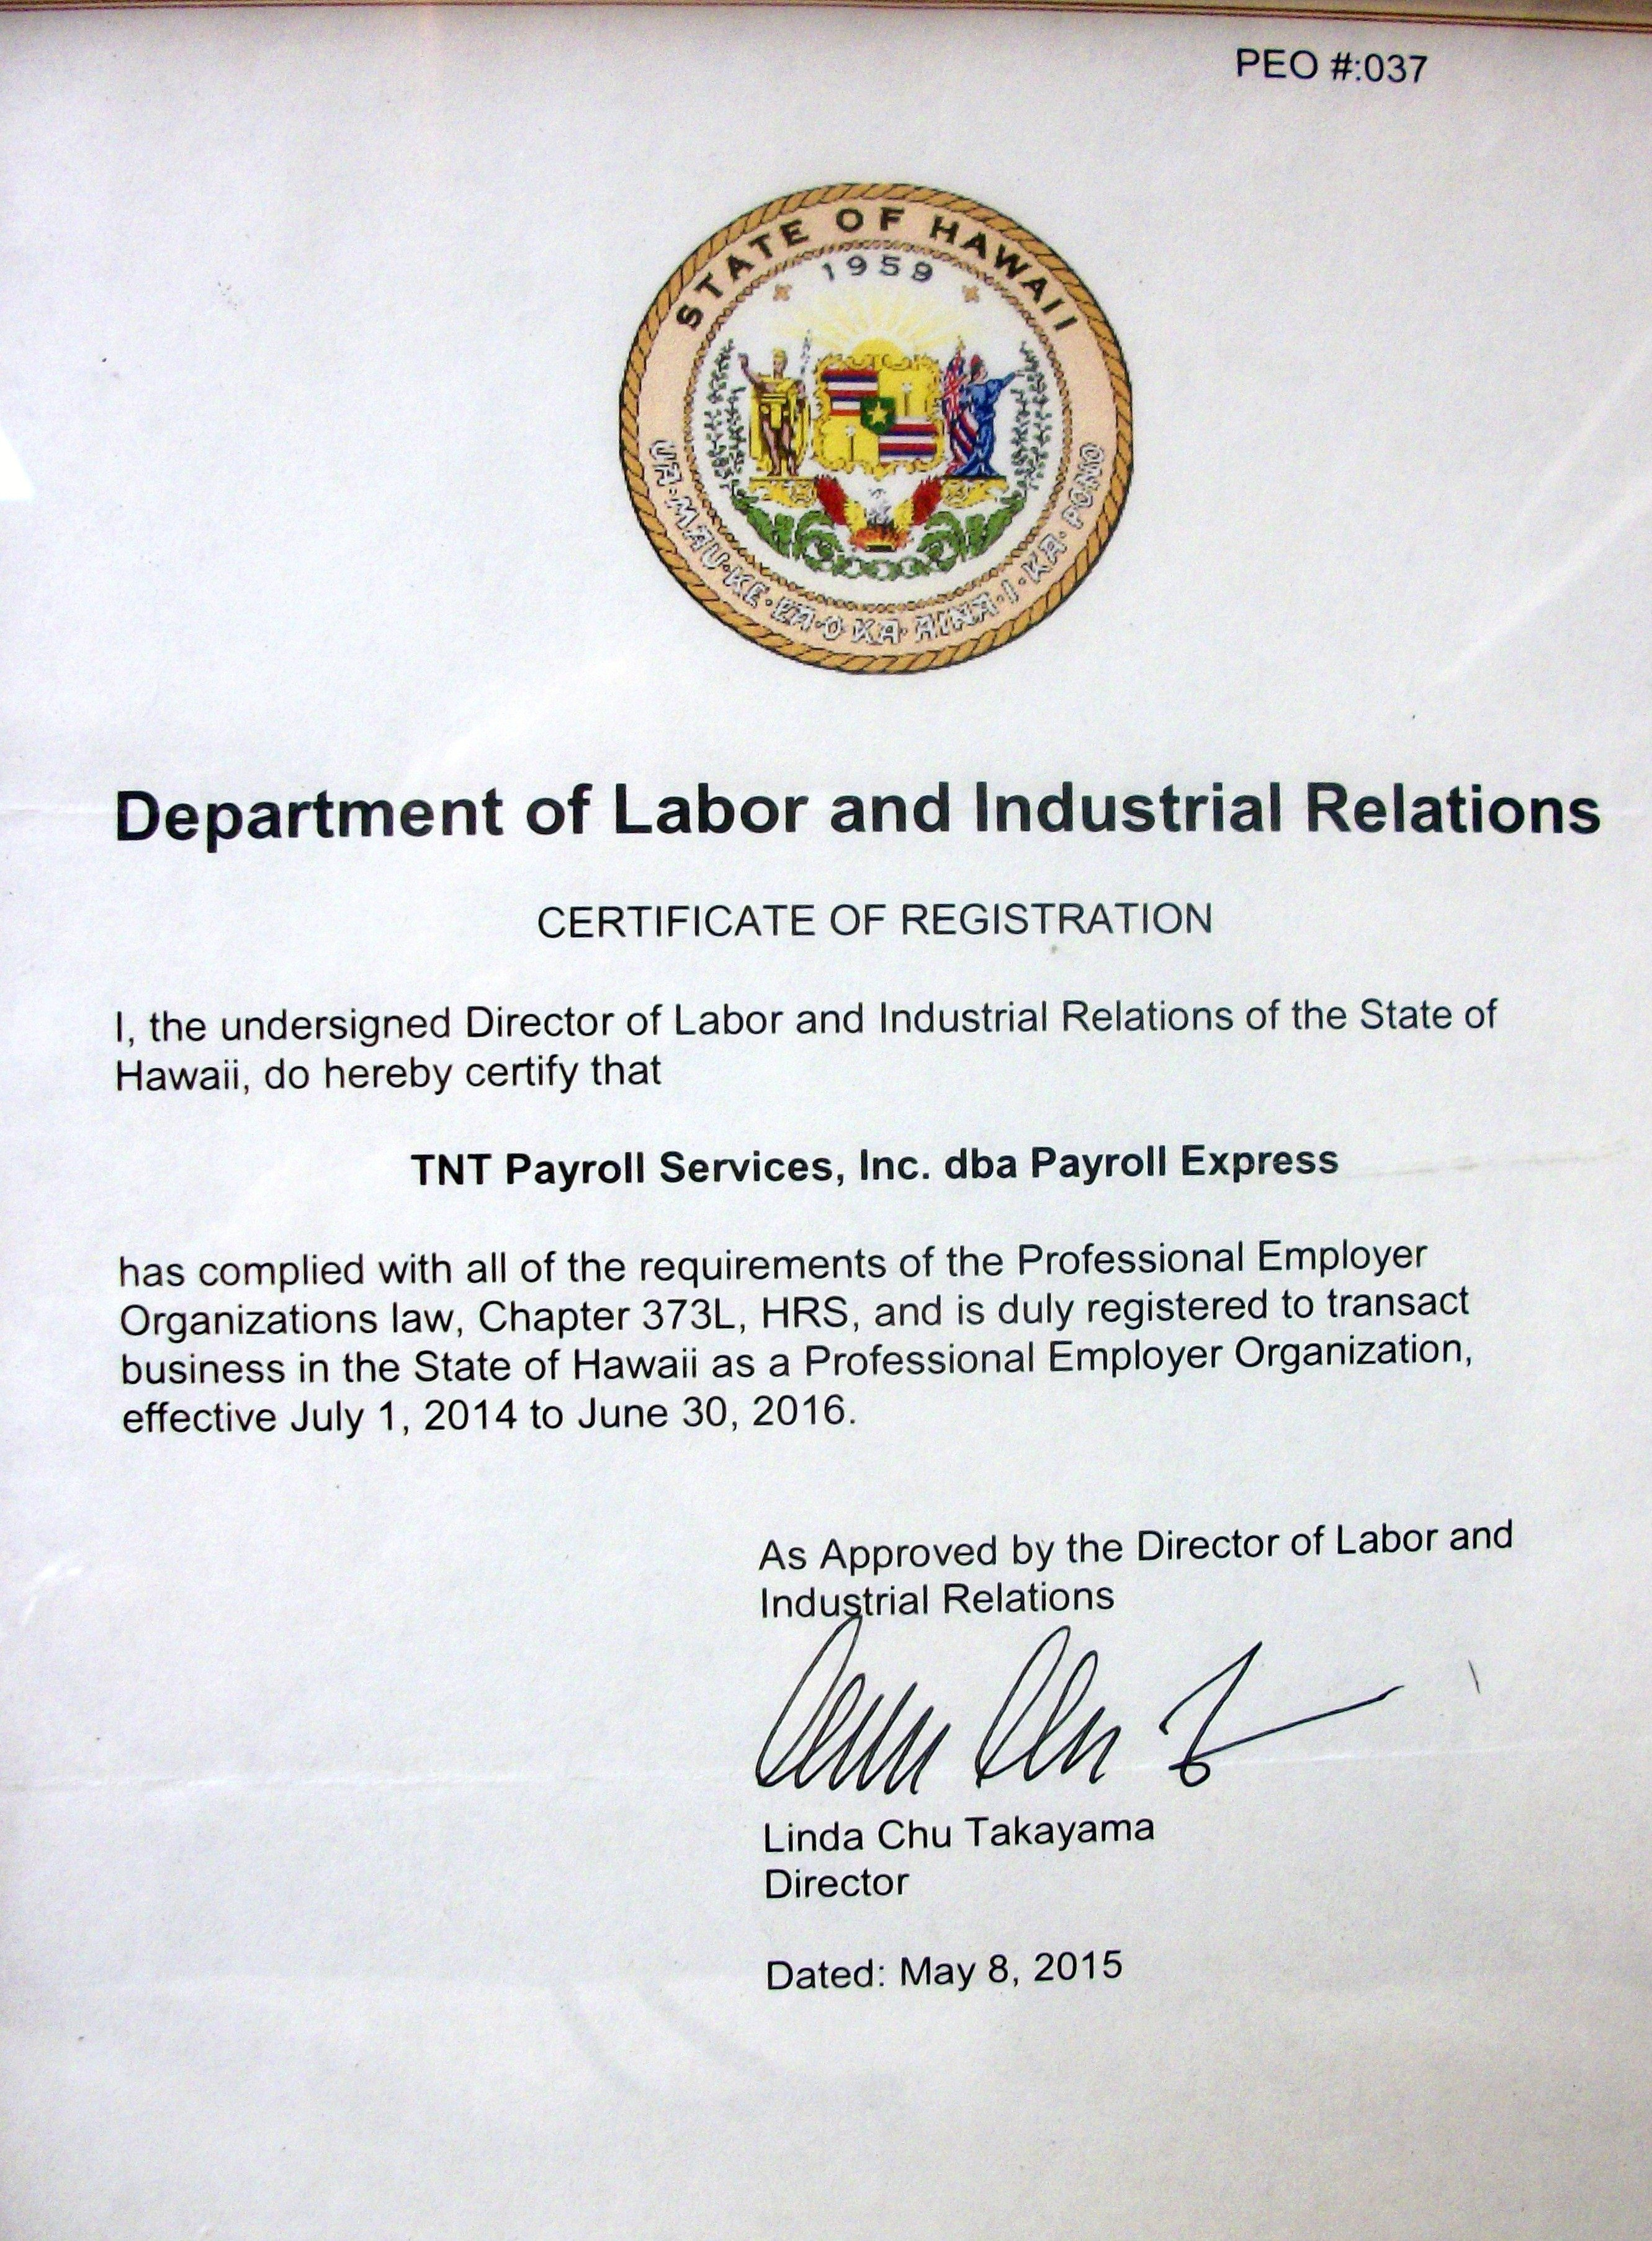 TNT Payroll Services certification of registration by state of Hawaii